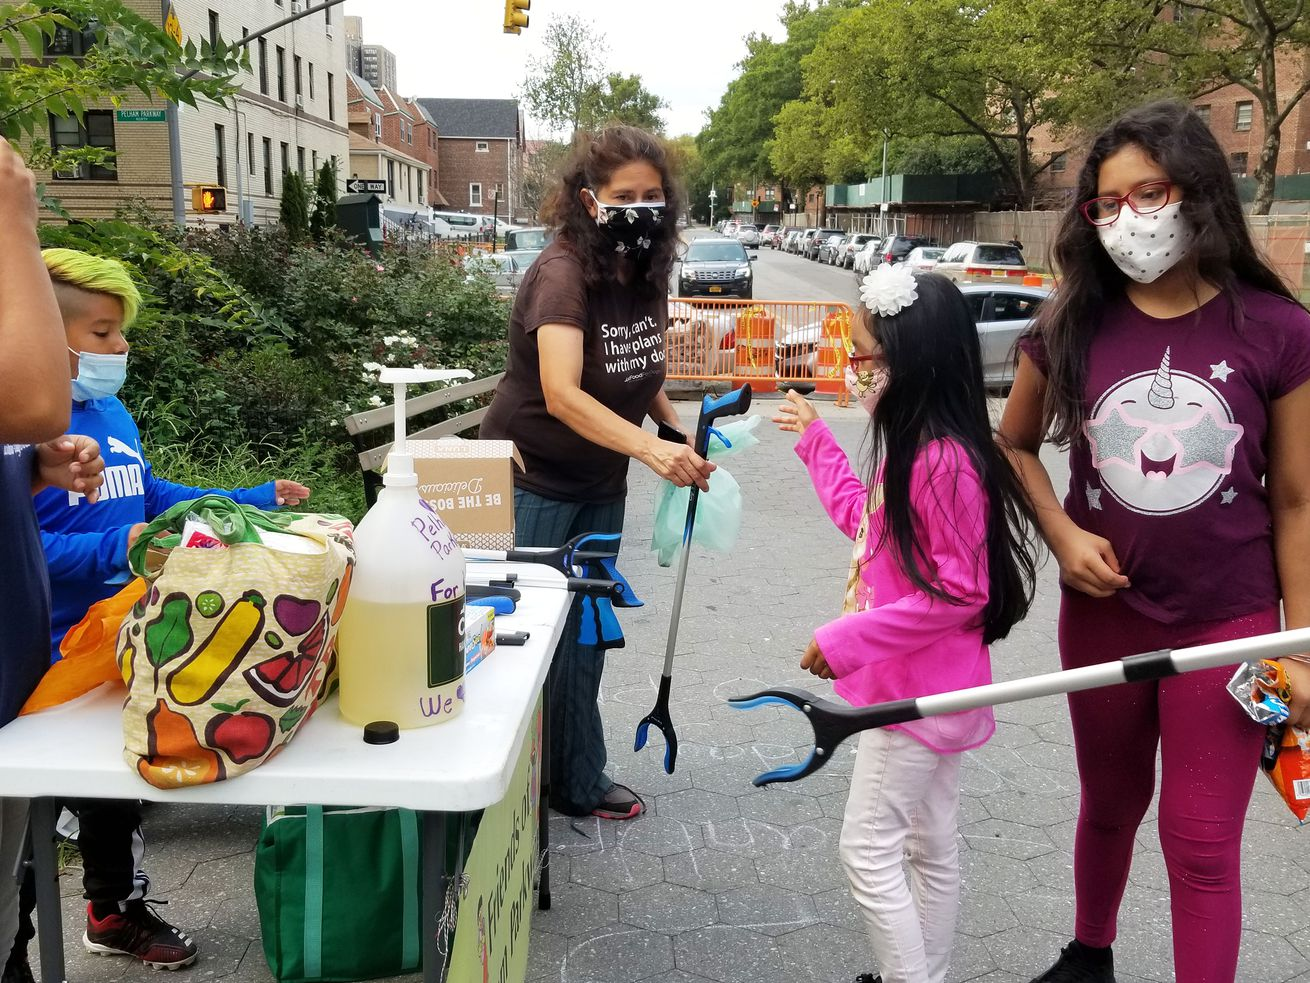 A woman hands a young girl a claw-life trash grabber to clean Pelham Parkway in the Bronx.